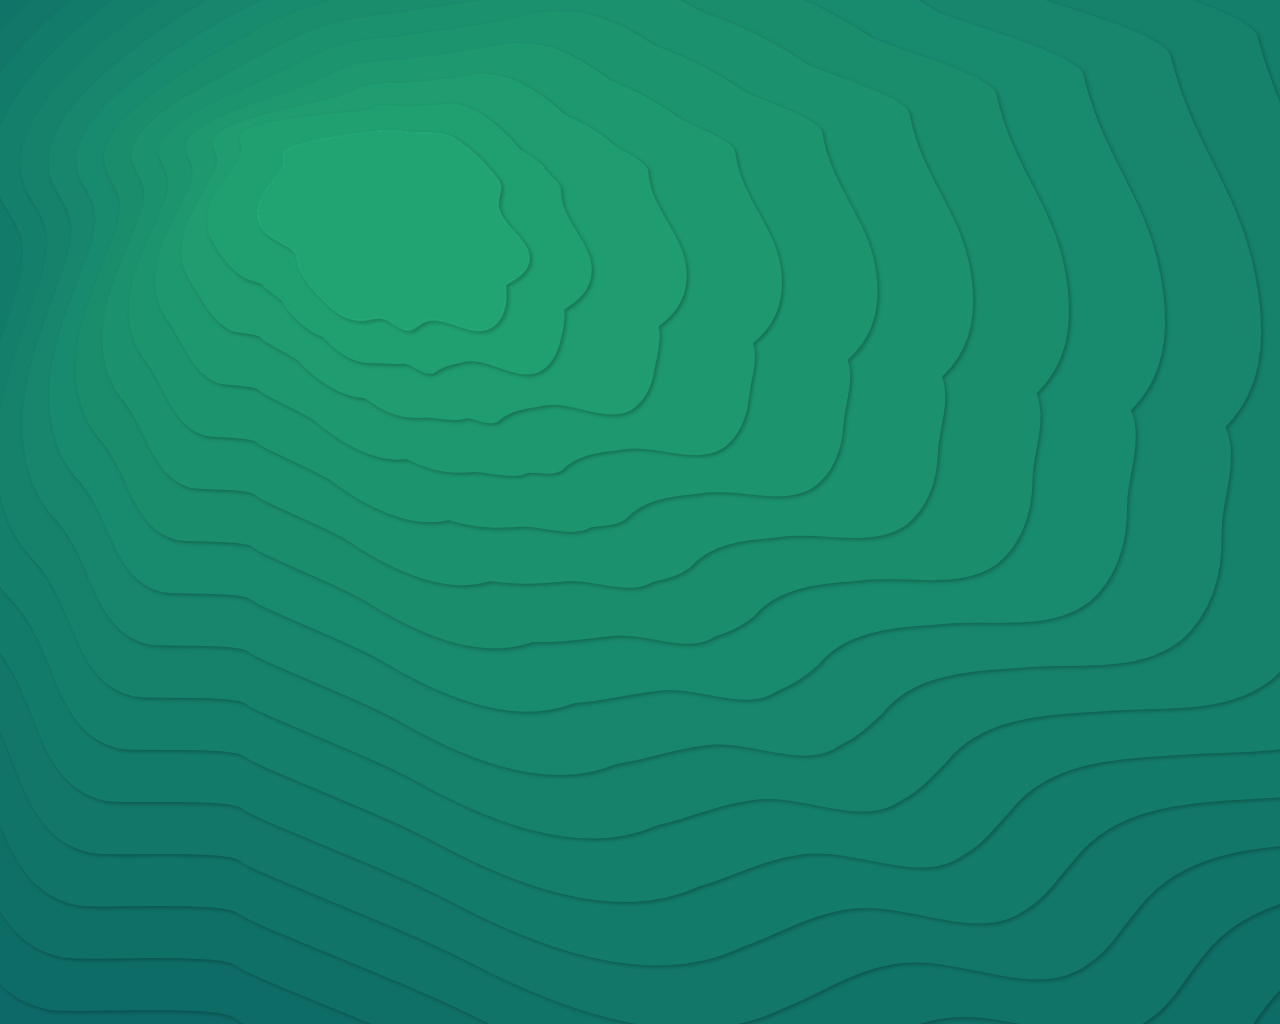 Wallpaper openSUSE 13.2